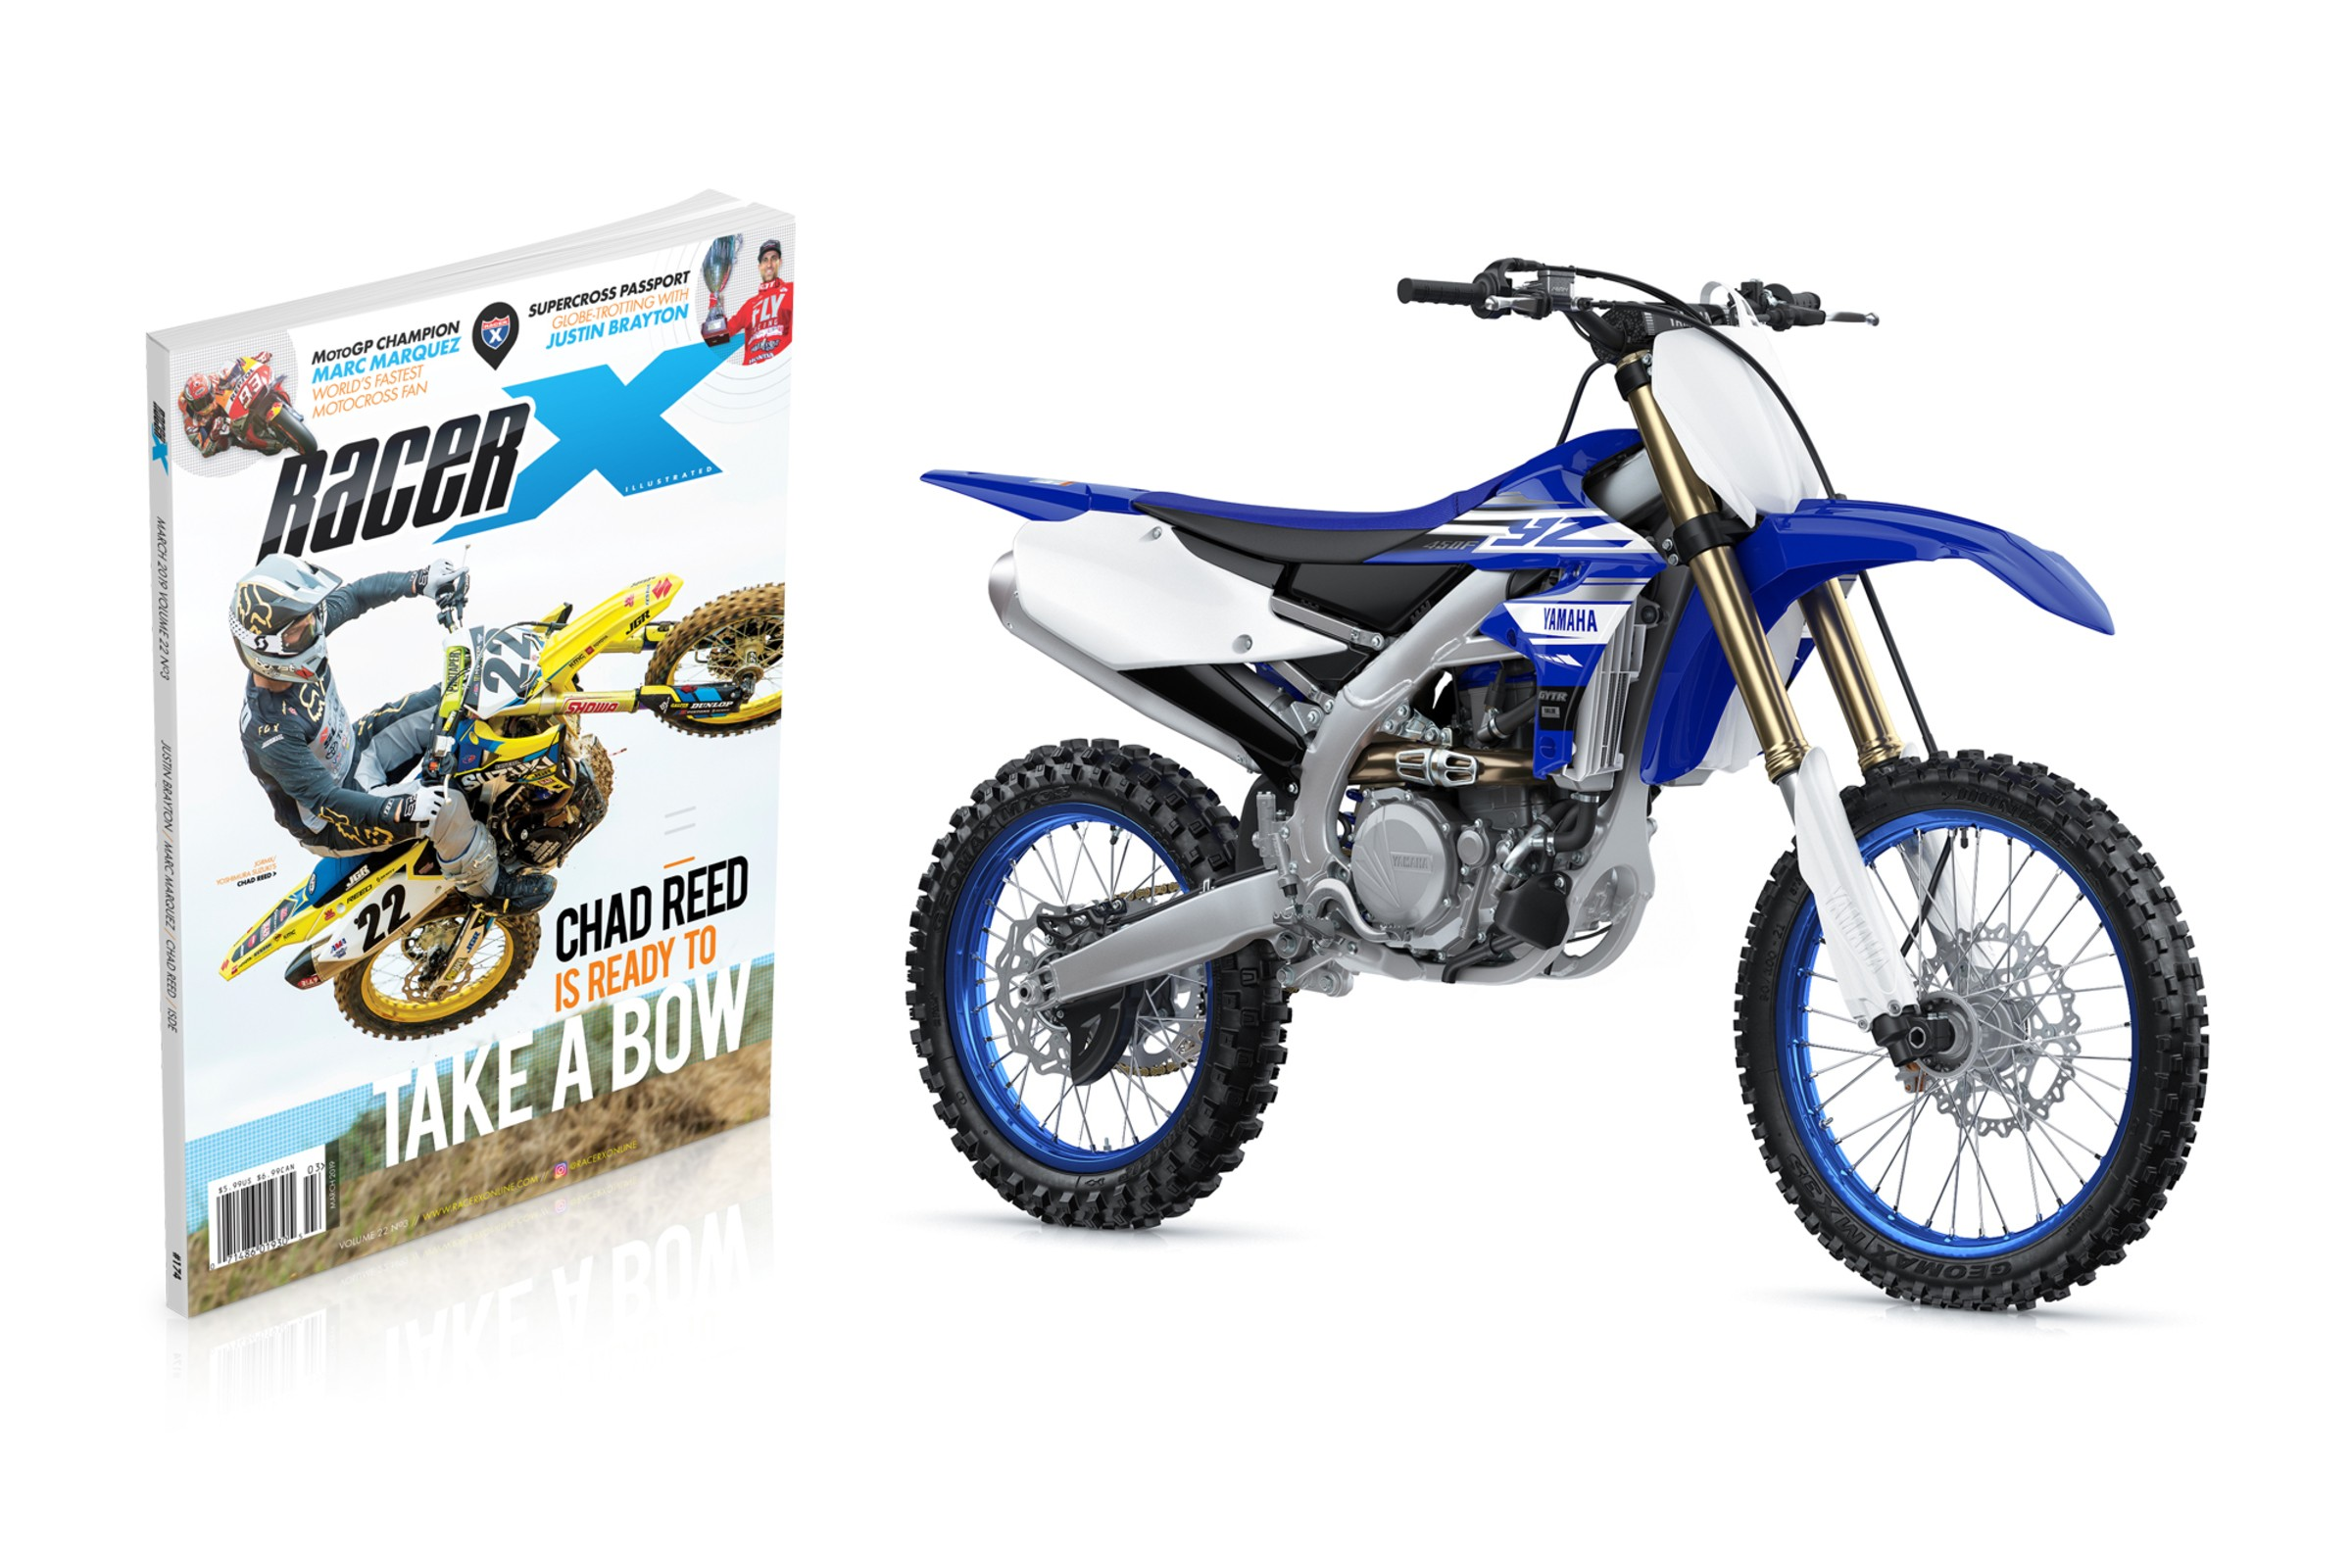 Enter To Win a 2019 Yamaha YZ450F at Glendale Supercross